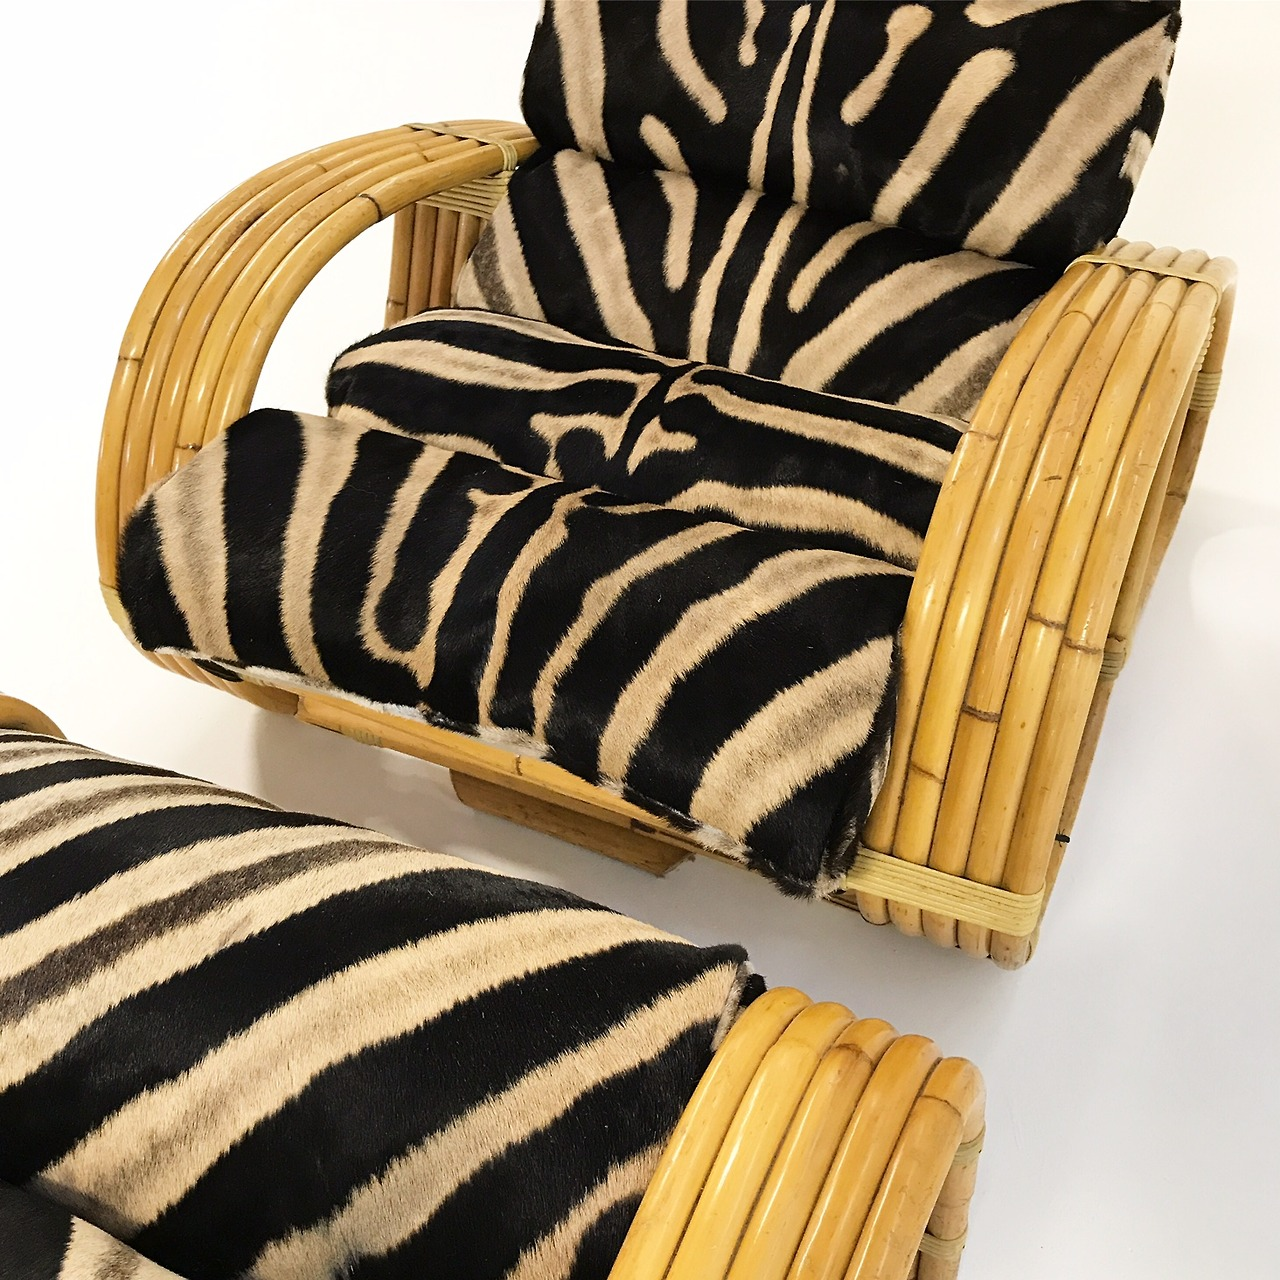 Rattan, - is one of the oldest and most sustainable jungle palm vines used to create furniture.It is seeing a revival as of lately with a modern twist.It is conceivable that being a child of the 70's has me nostalgically coveting these pieces, or perhaps it is simply how versatile and classic in design they continue to be.Either way,if there ever was a chair that exuded confidence without ego it is this one; a classic made sexy. -tM